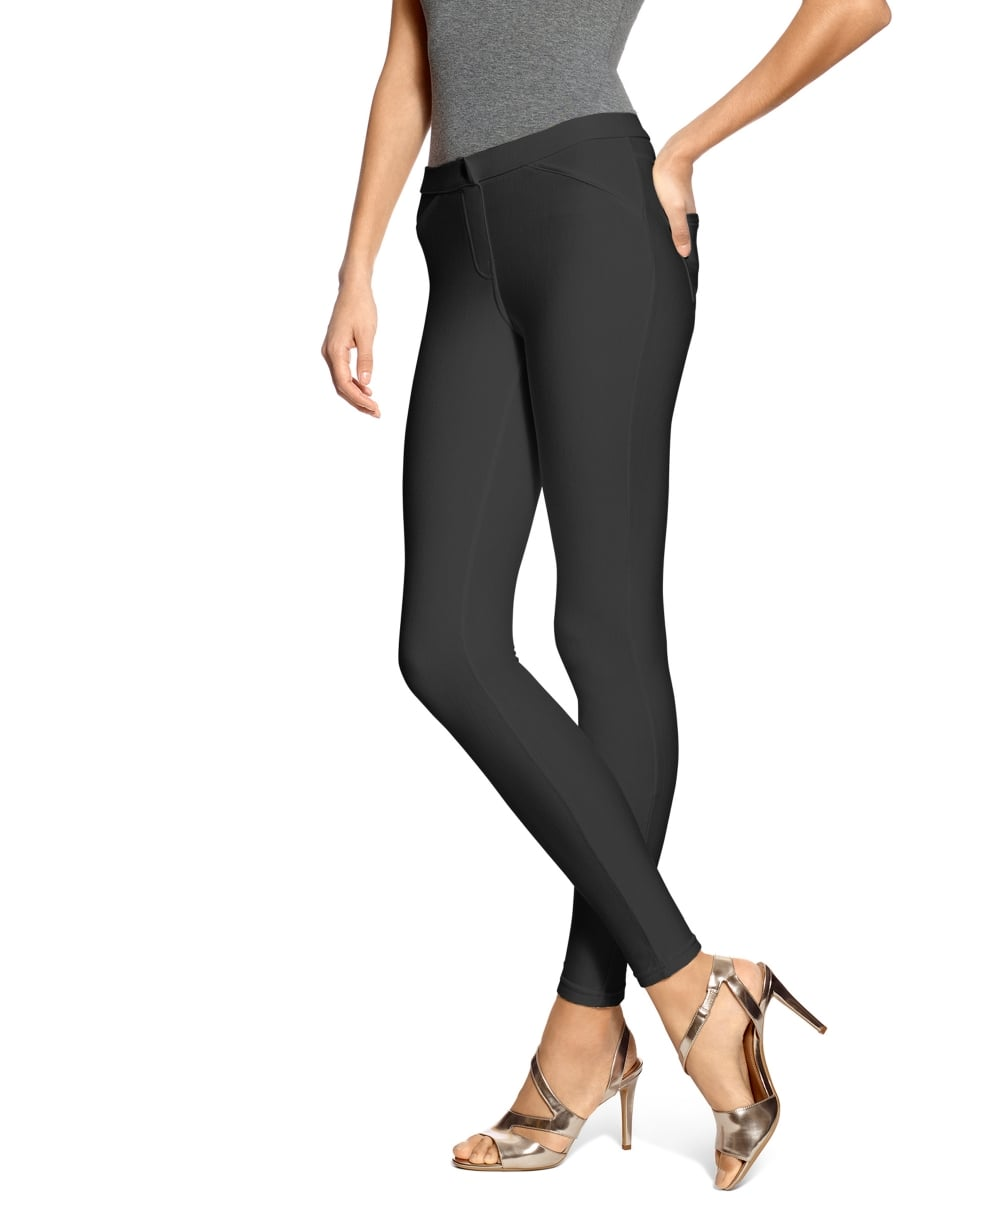 1e101ab768816e HUE Twill Leggings - Leggings from luxury-legs.com UK